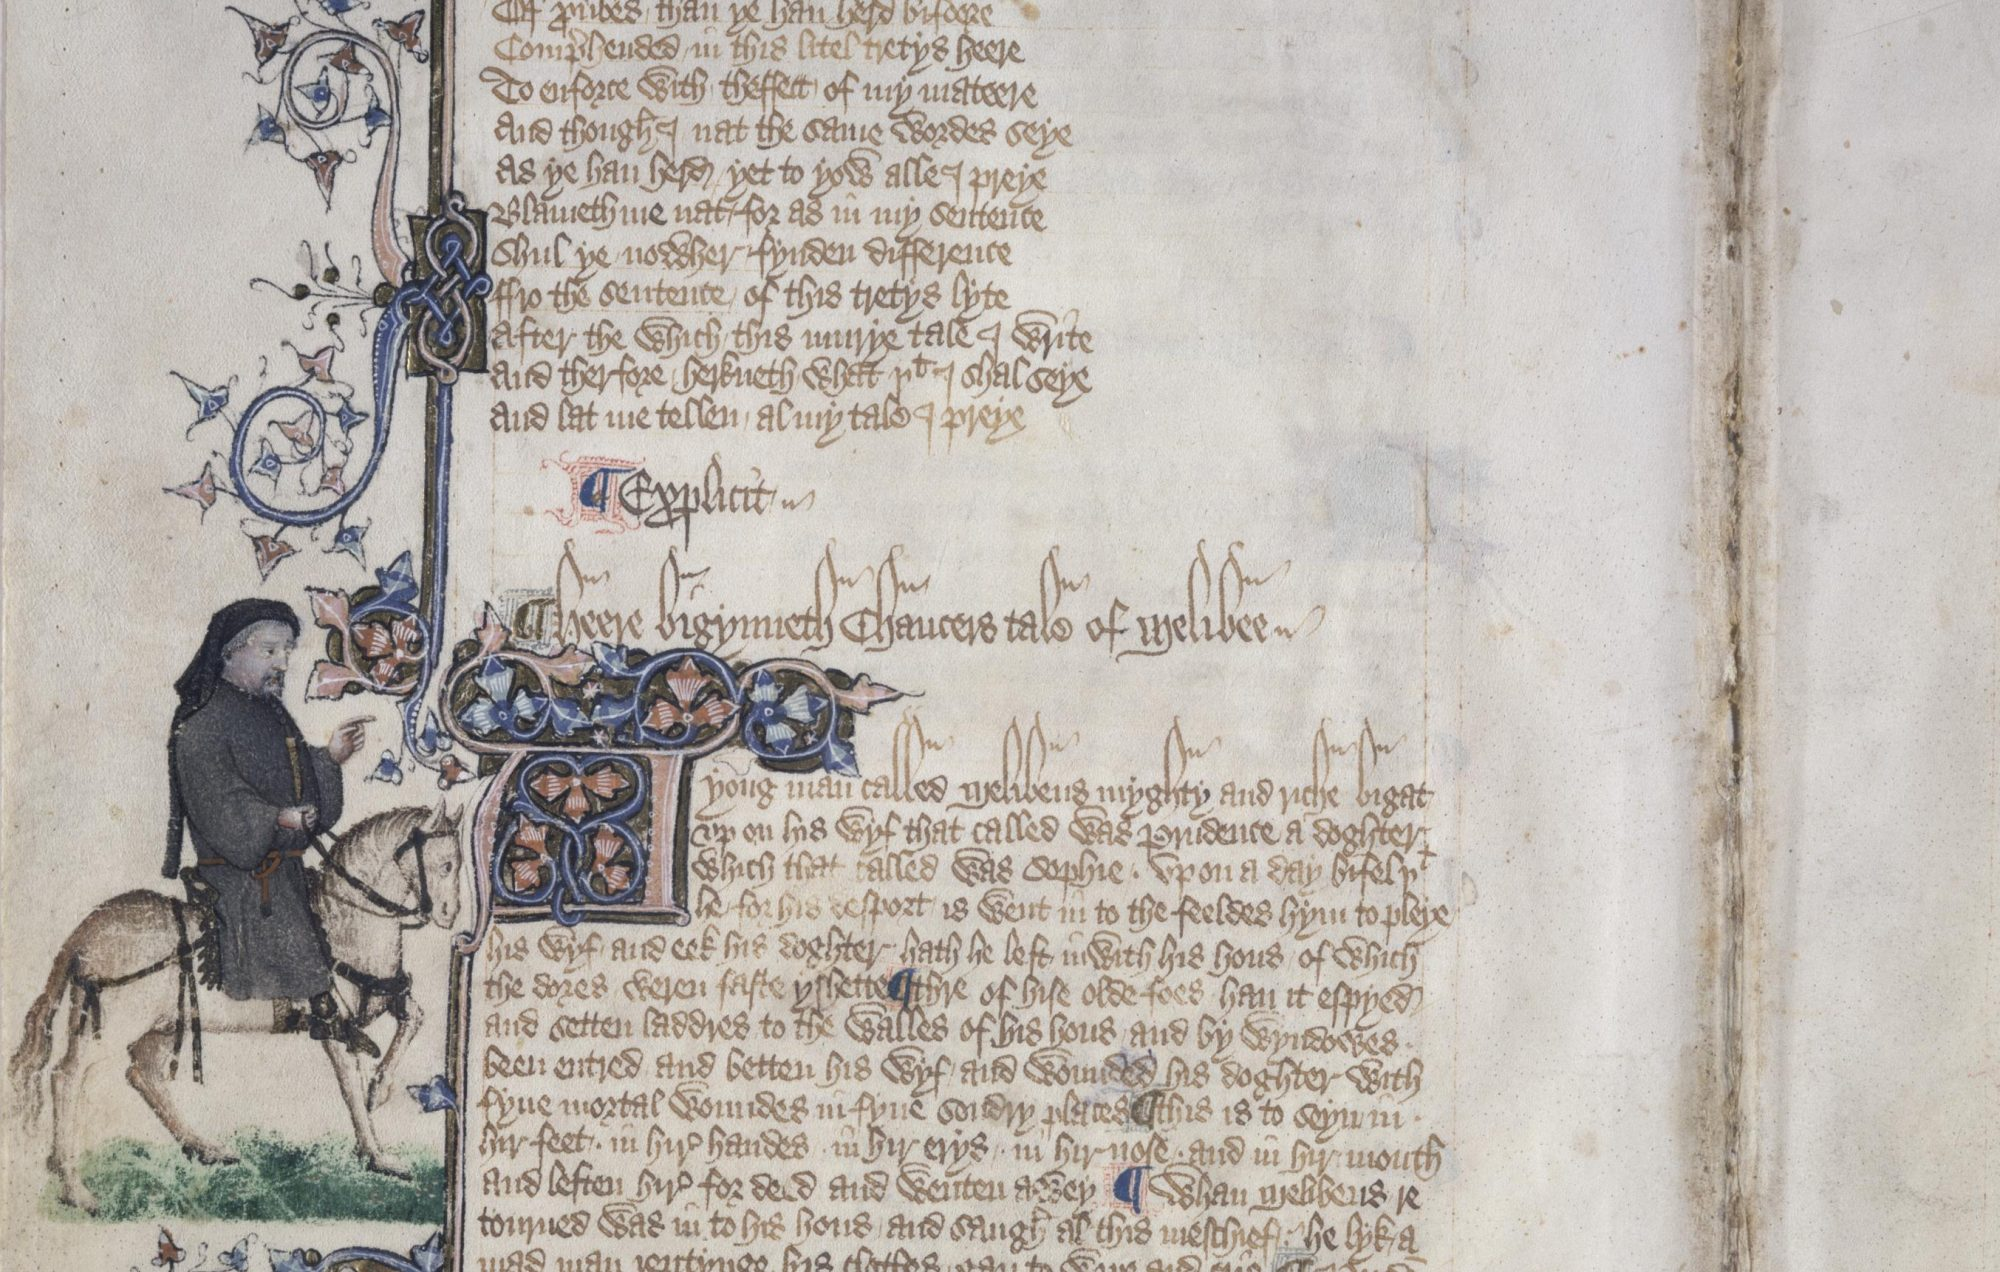 The Chaucer Heritage Trust